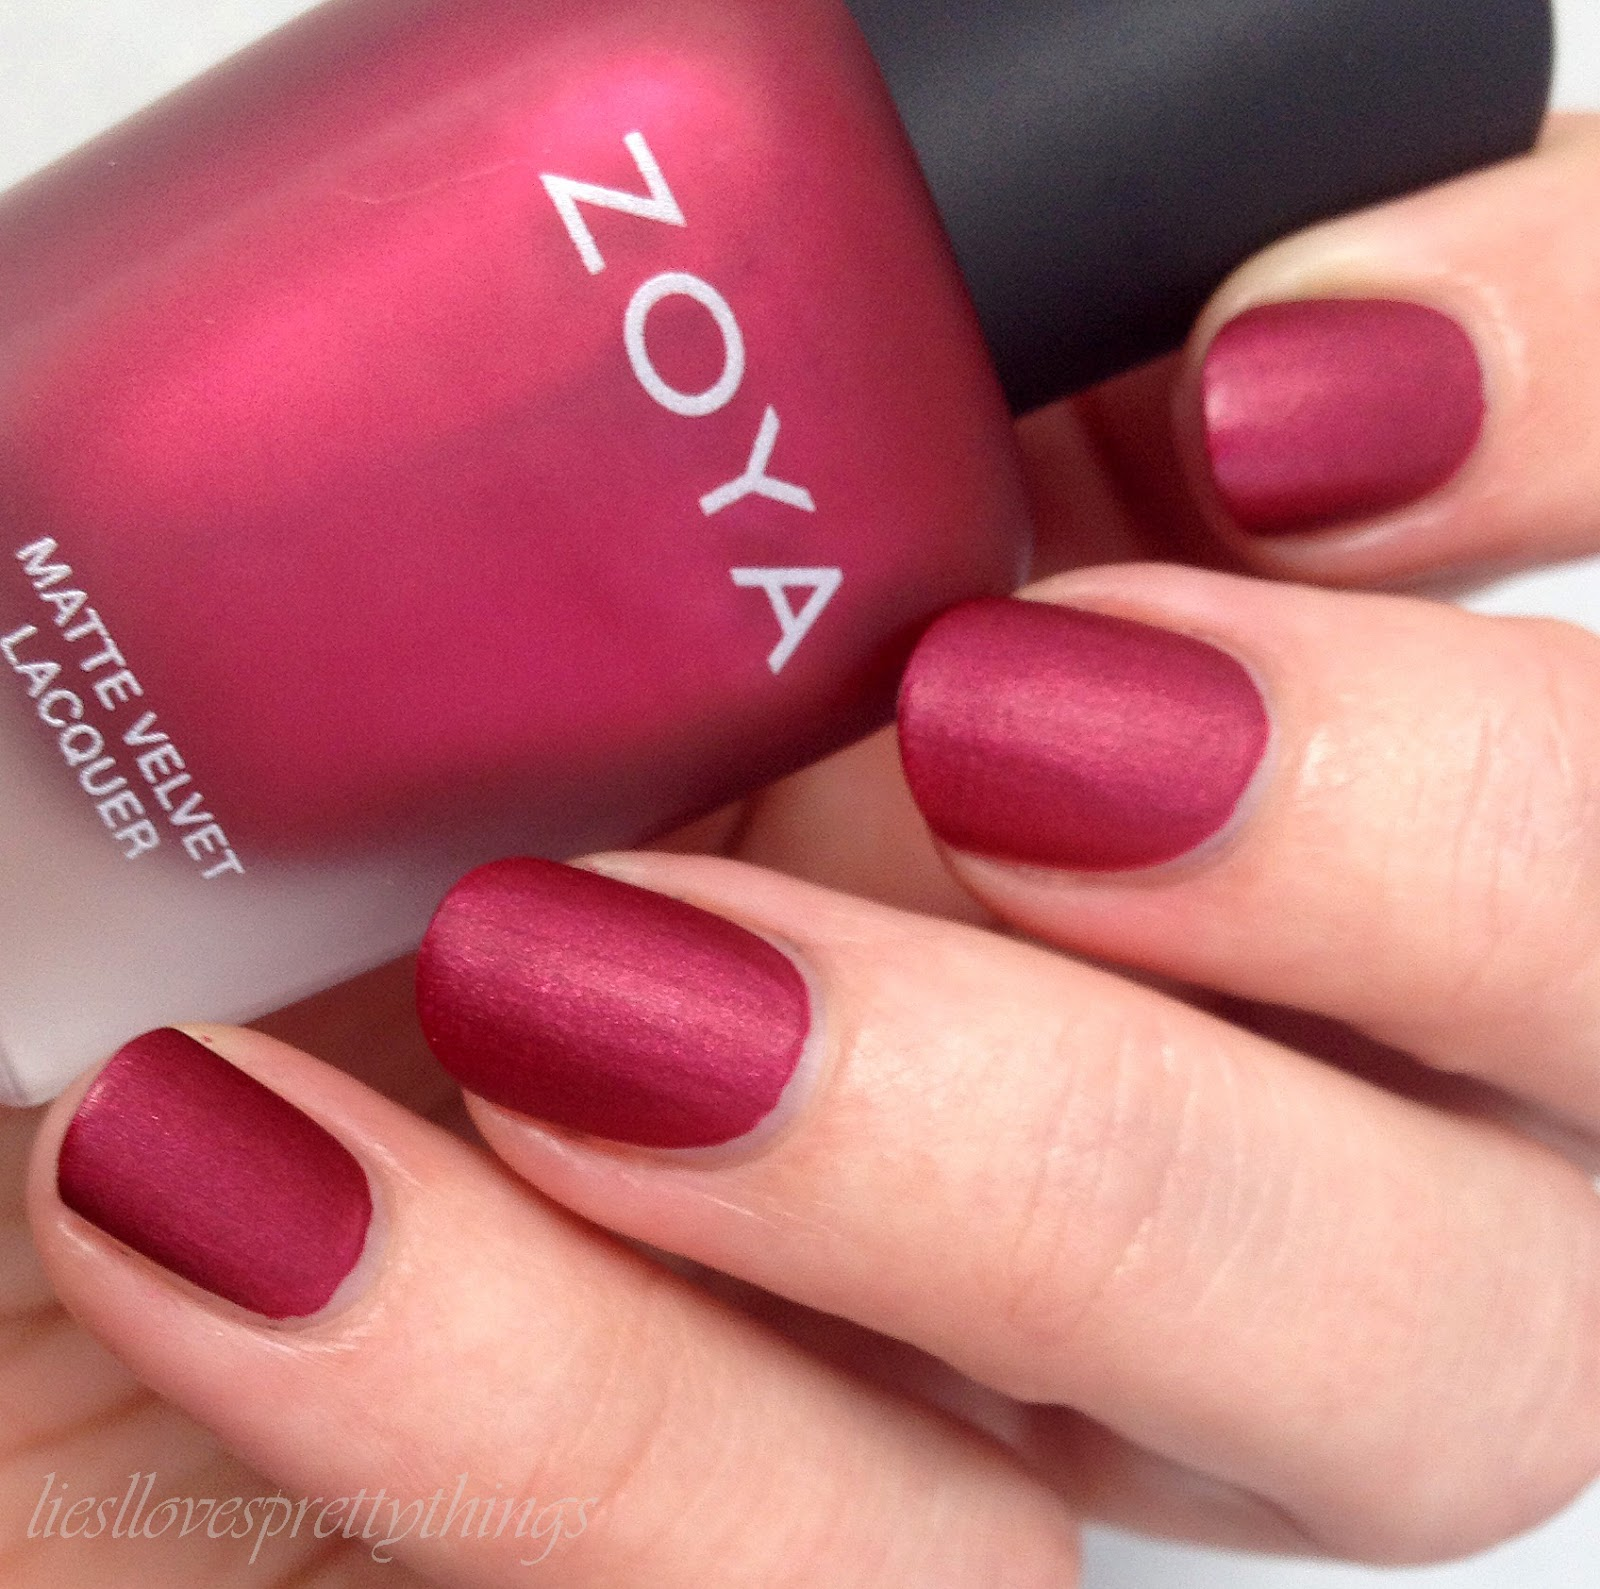 Liesl Loves Pretty Things Zoya Posh Matte Velvet Collection Cosmetics Lip Paint Pure Red Swatch And Review